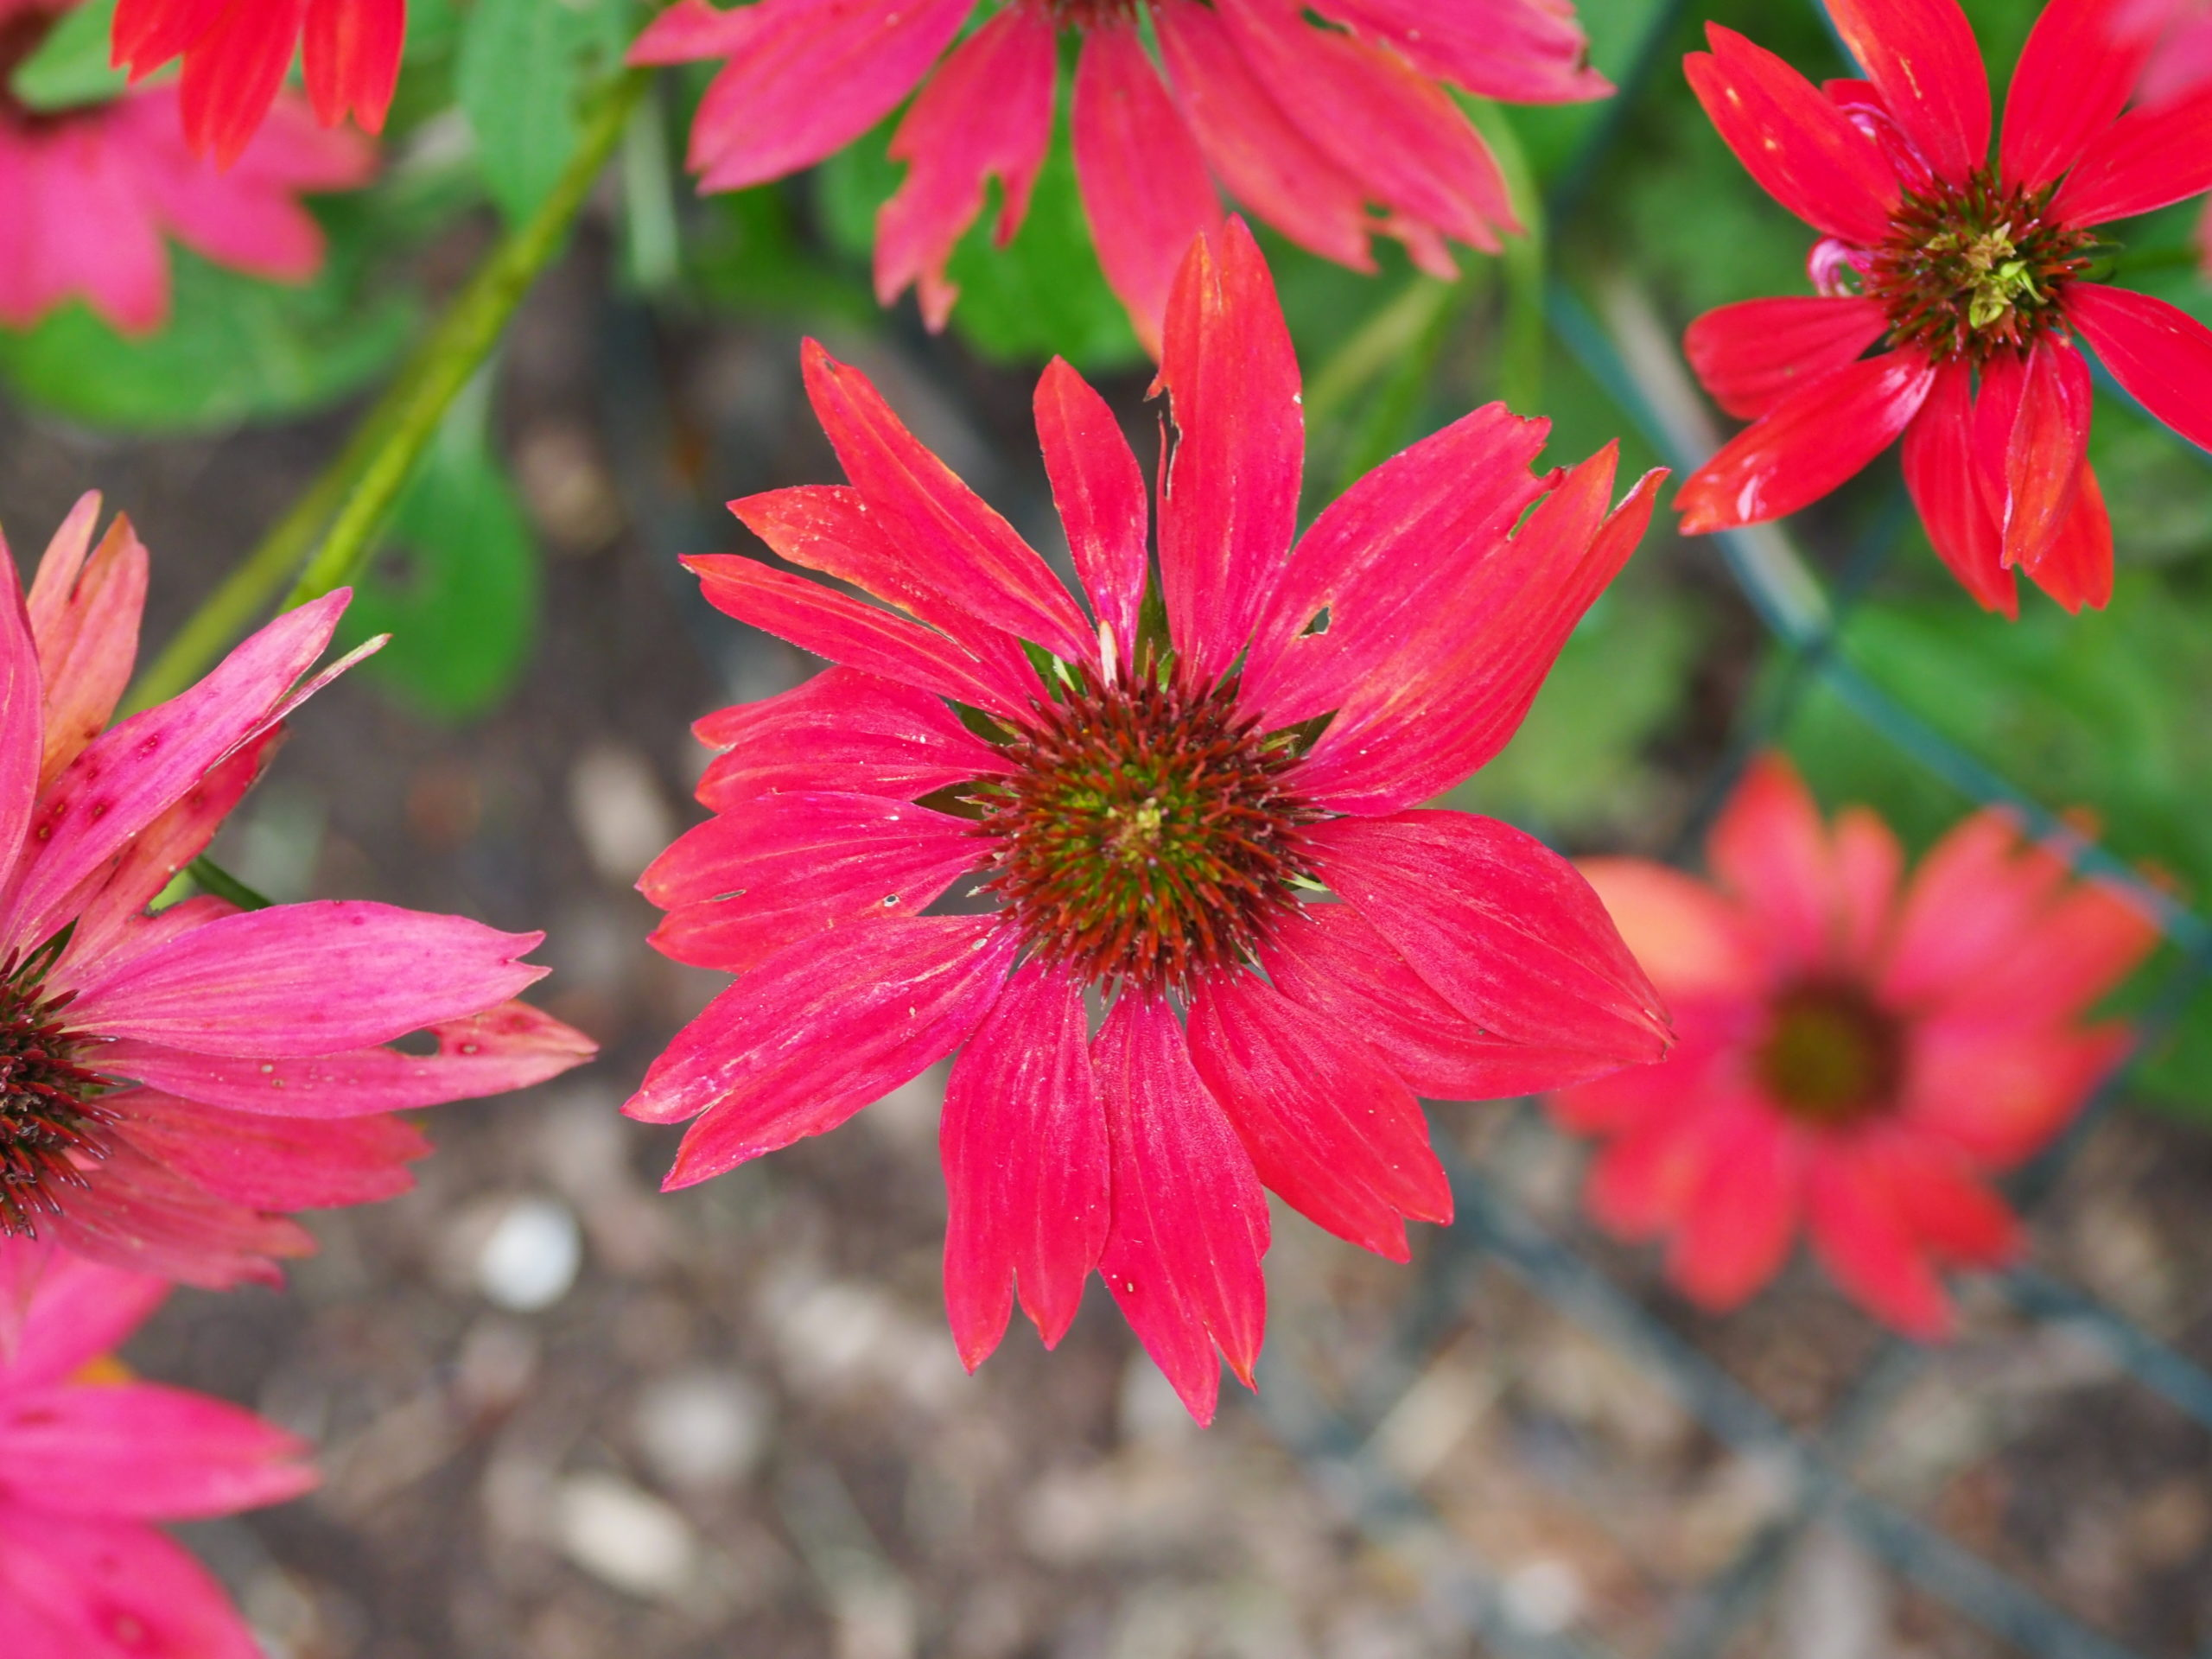 """Echinacea """"Sombrero Salsa Red"""" a bit past its prime looked great in the garden a few weeks earlier but was only visited by groundhogs and no pollinators."""